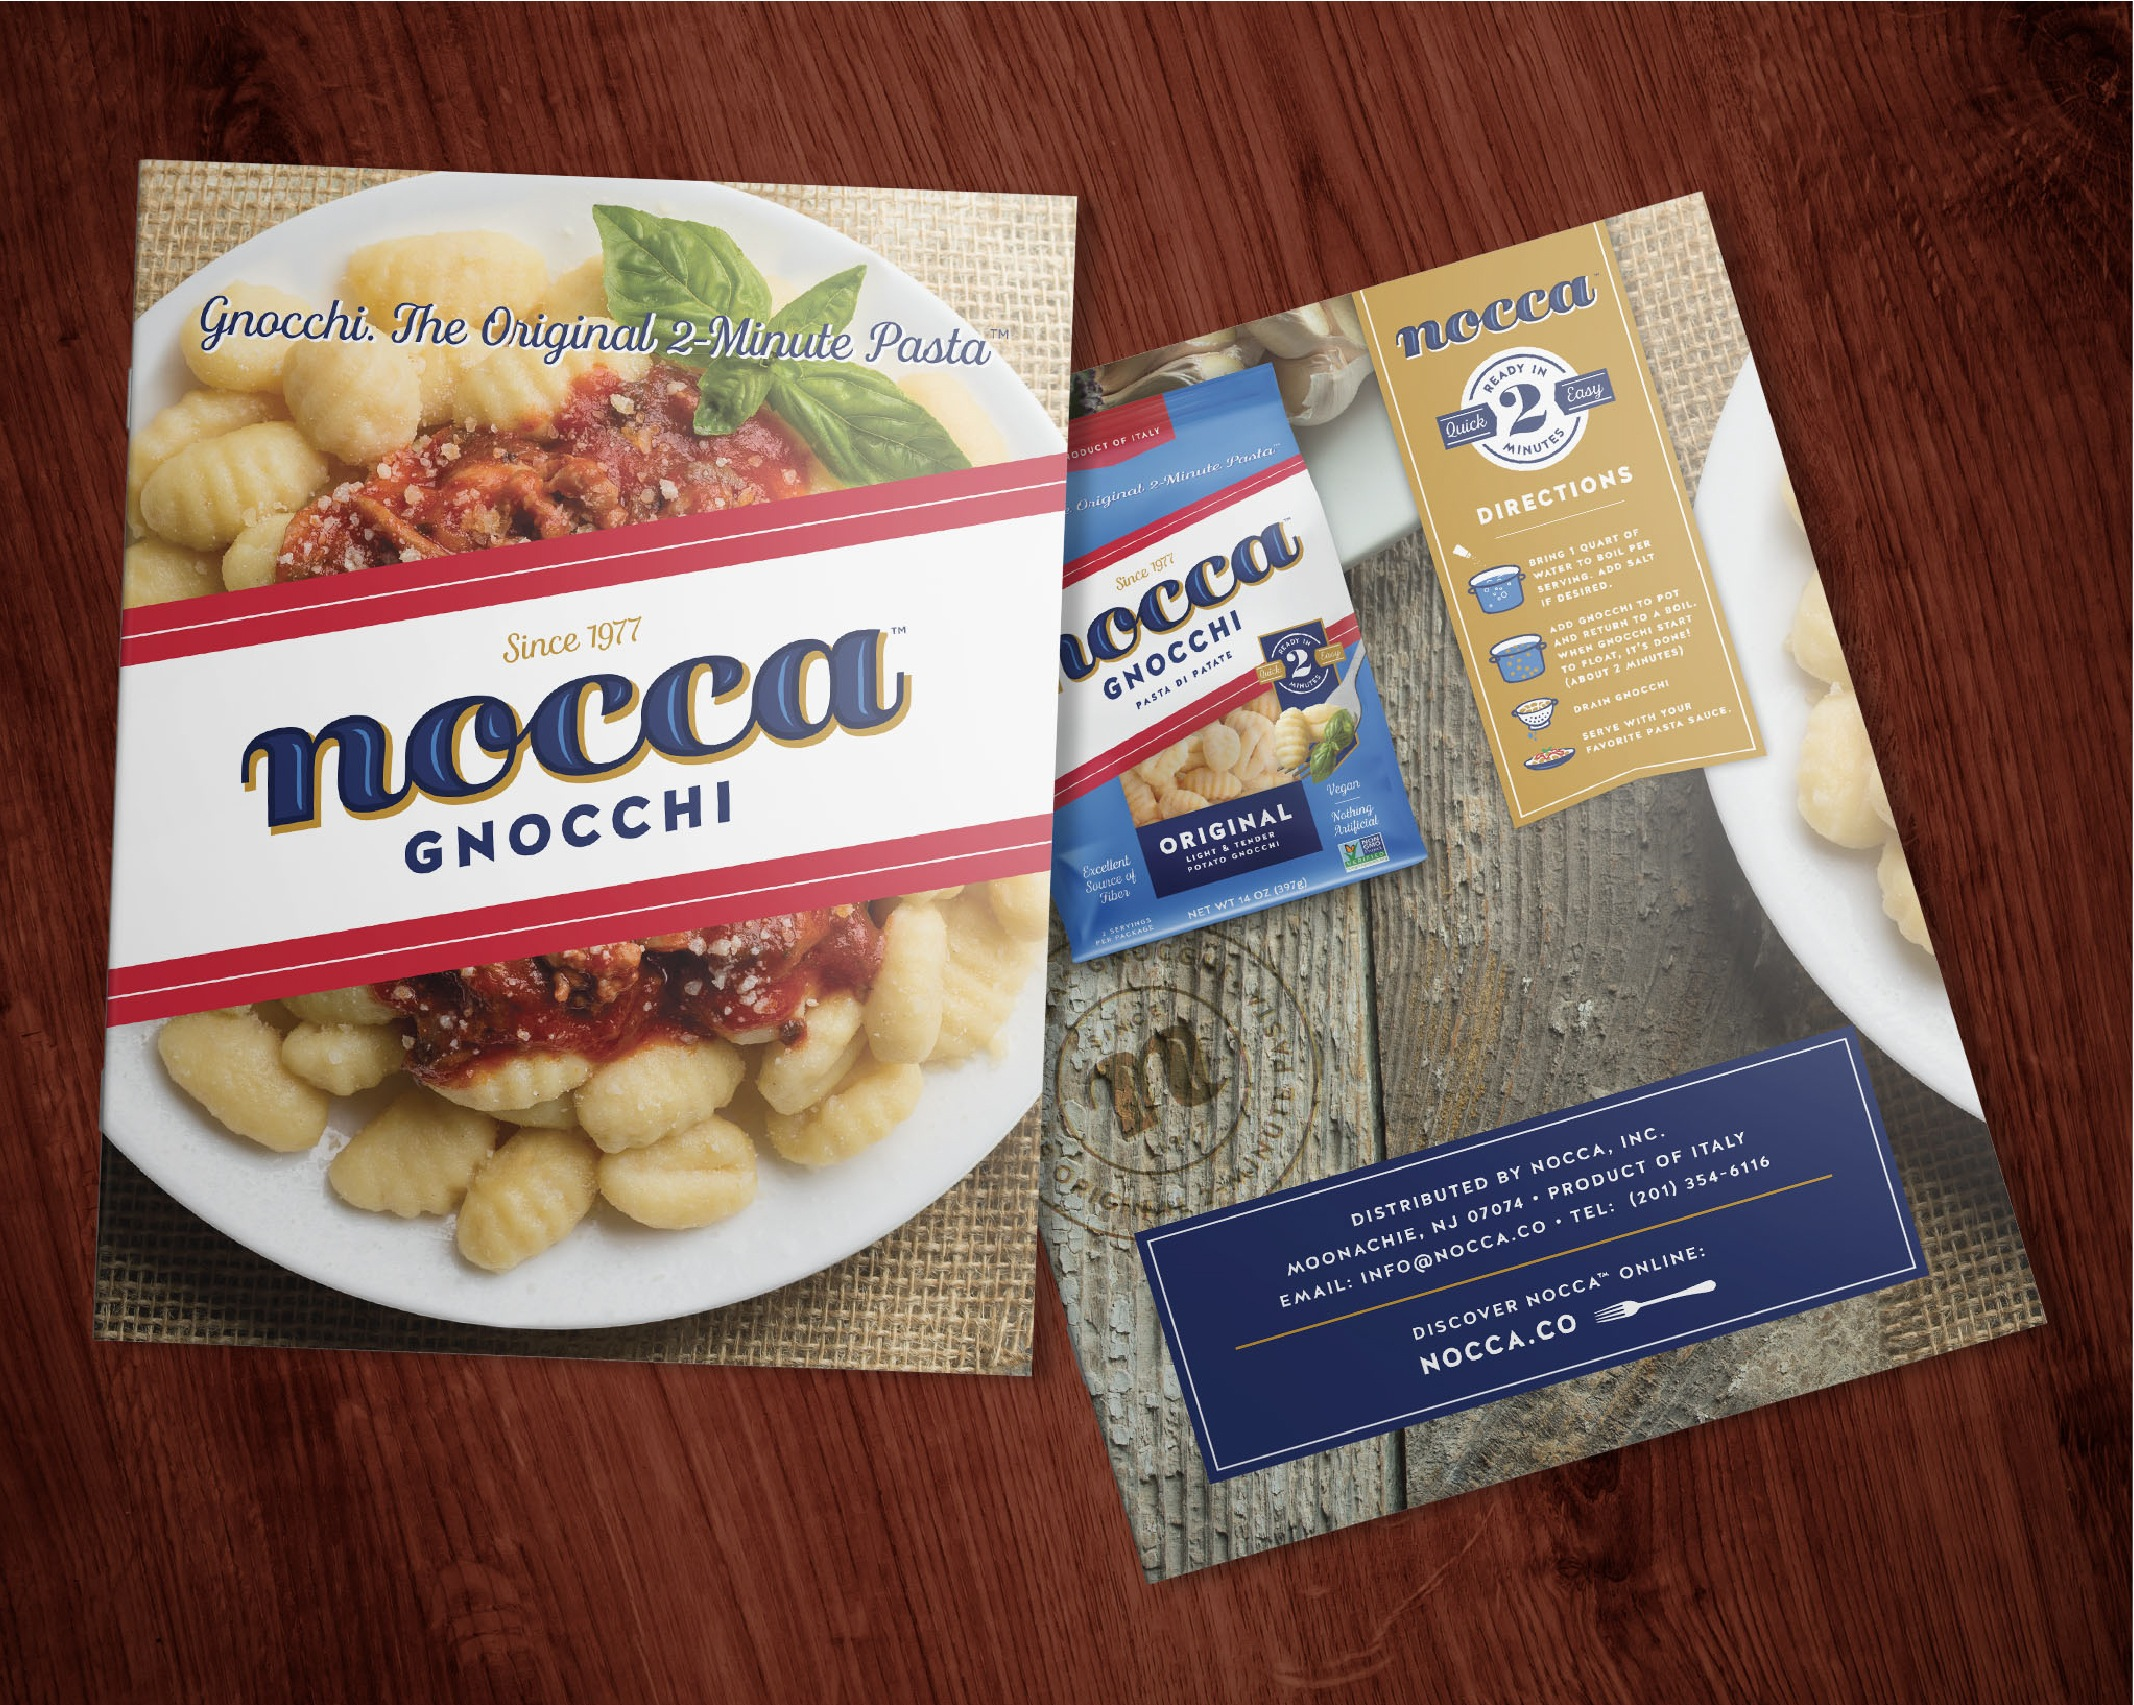 Nocca Pasta Brand Marketing